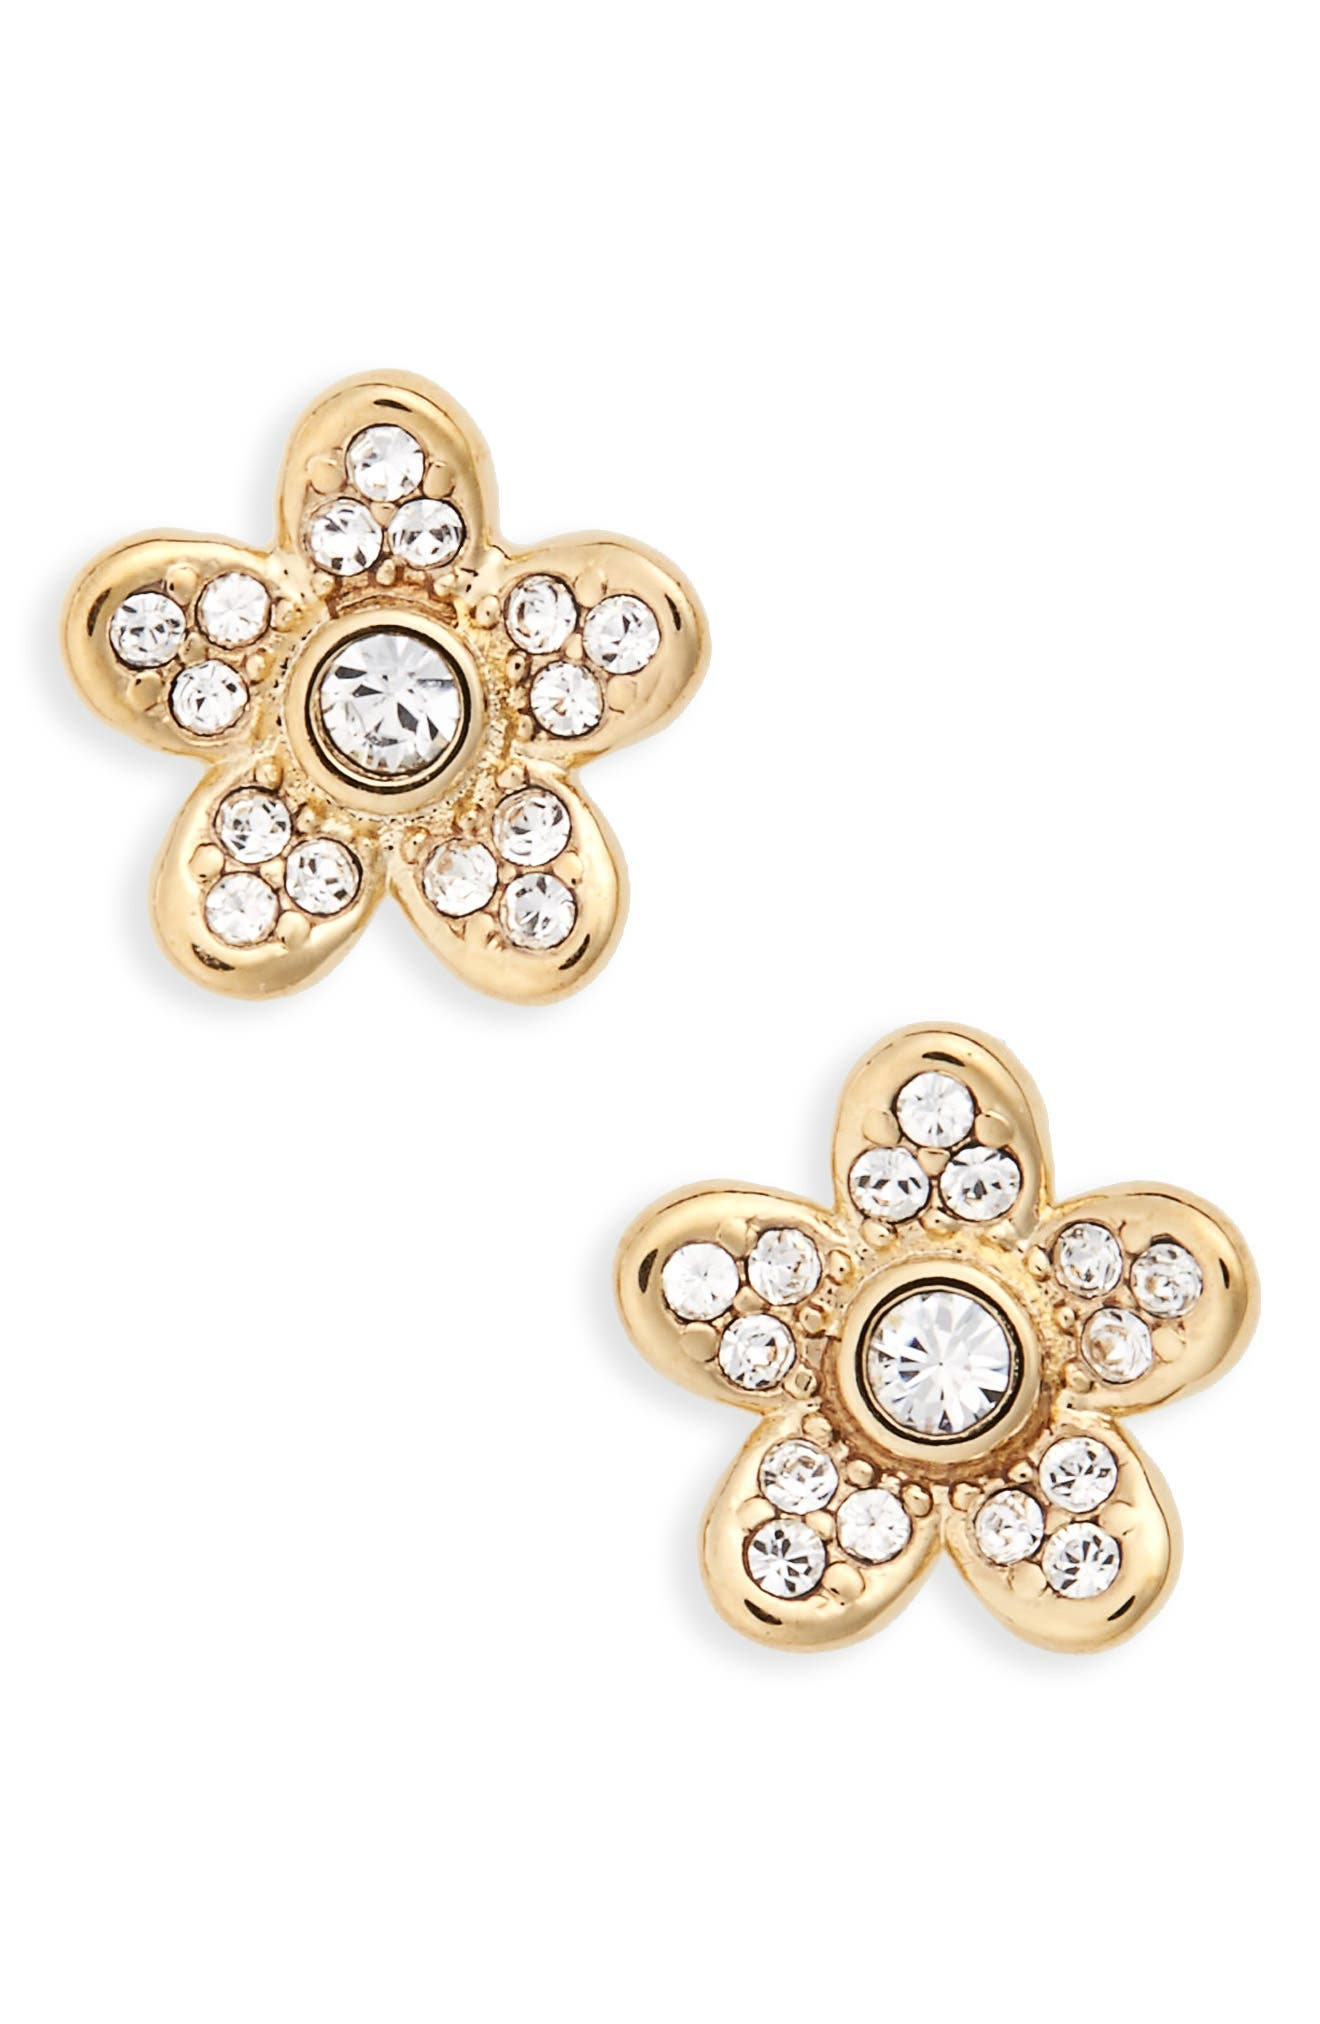 MARC JACOBS Coin Flower Stud Earrings